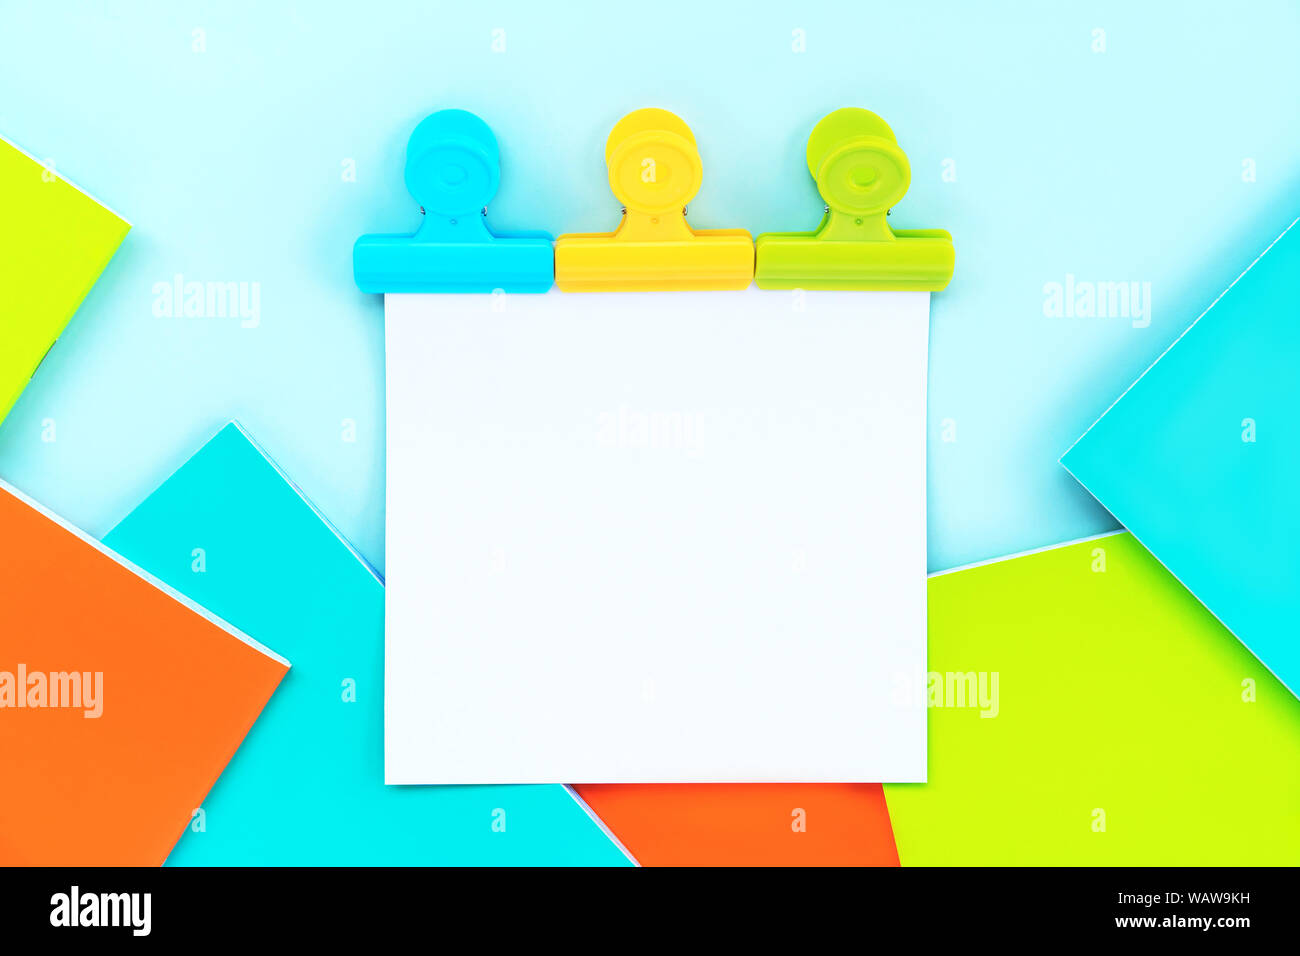 A white sheet for writing attached by three multi-colored stationery clips  Stock Photo